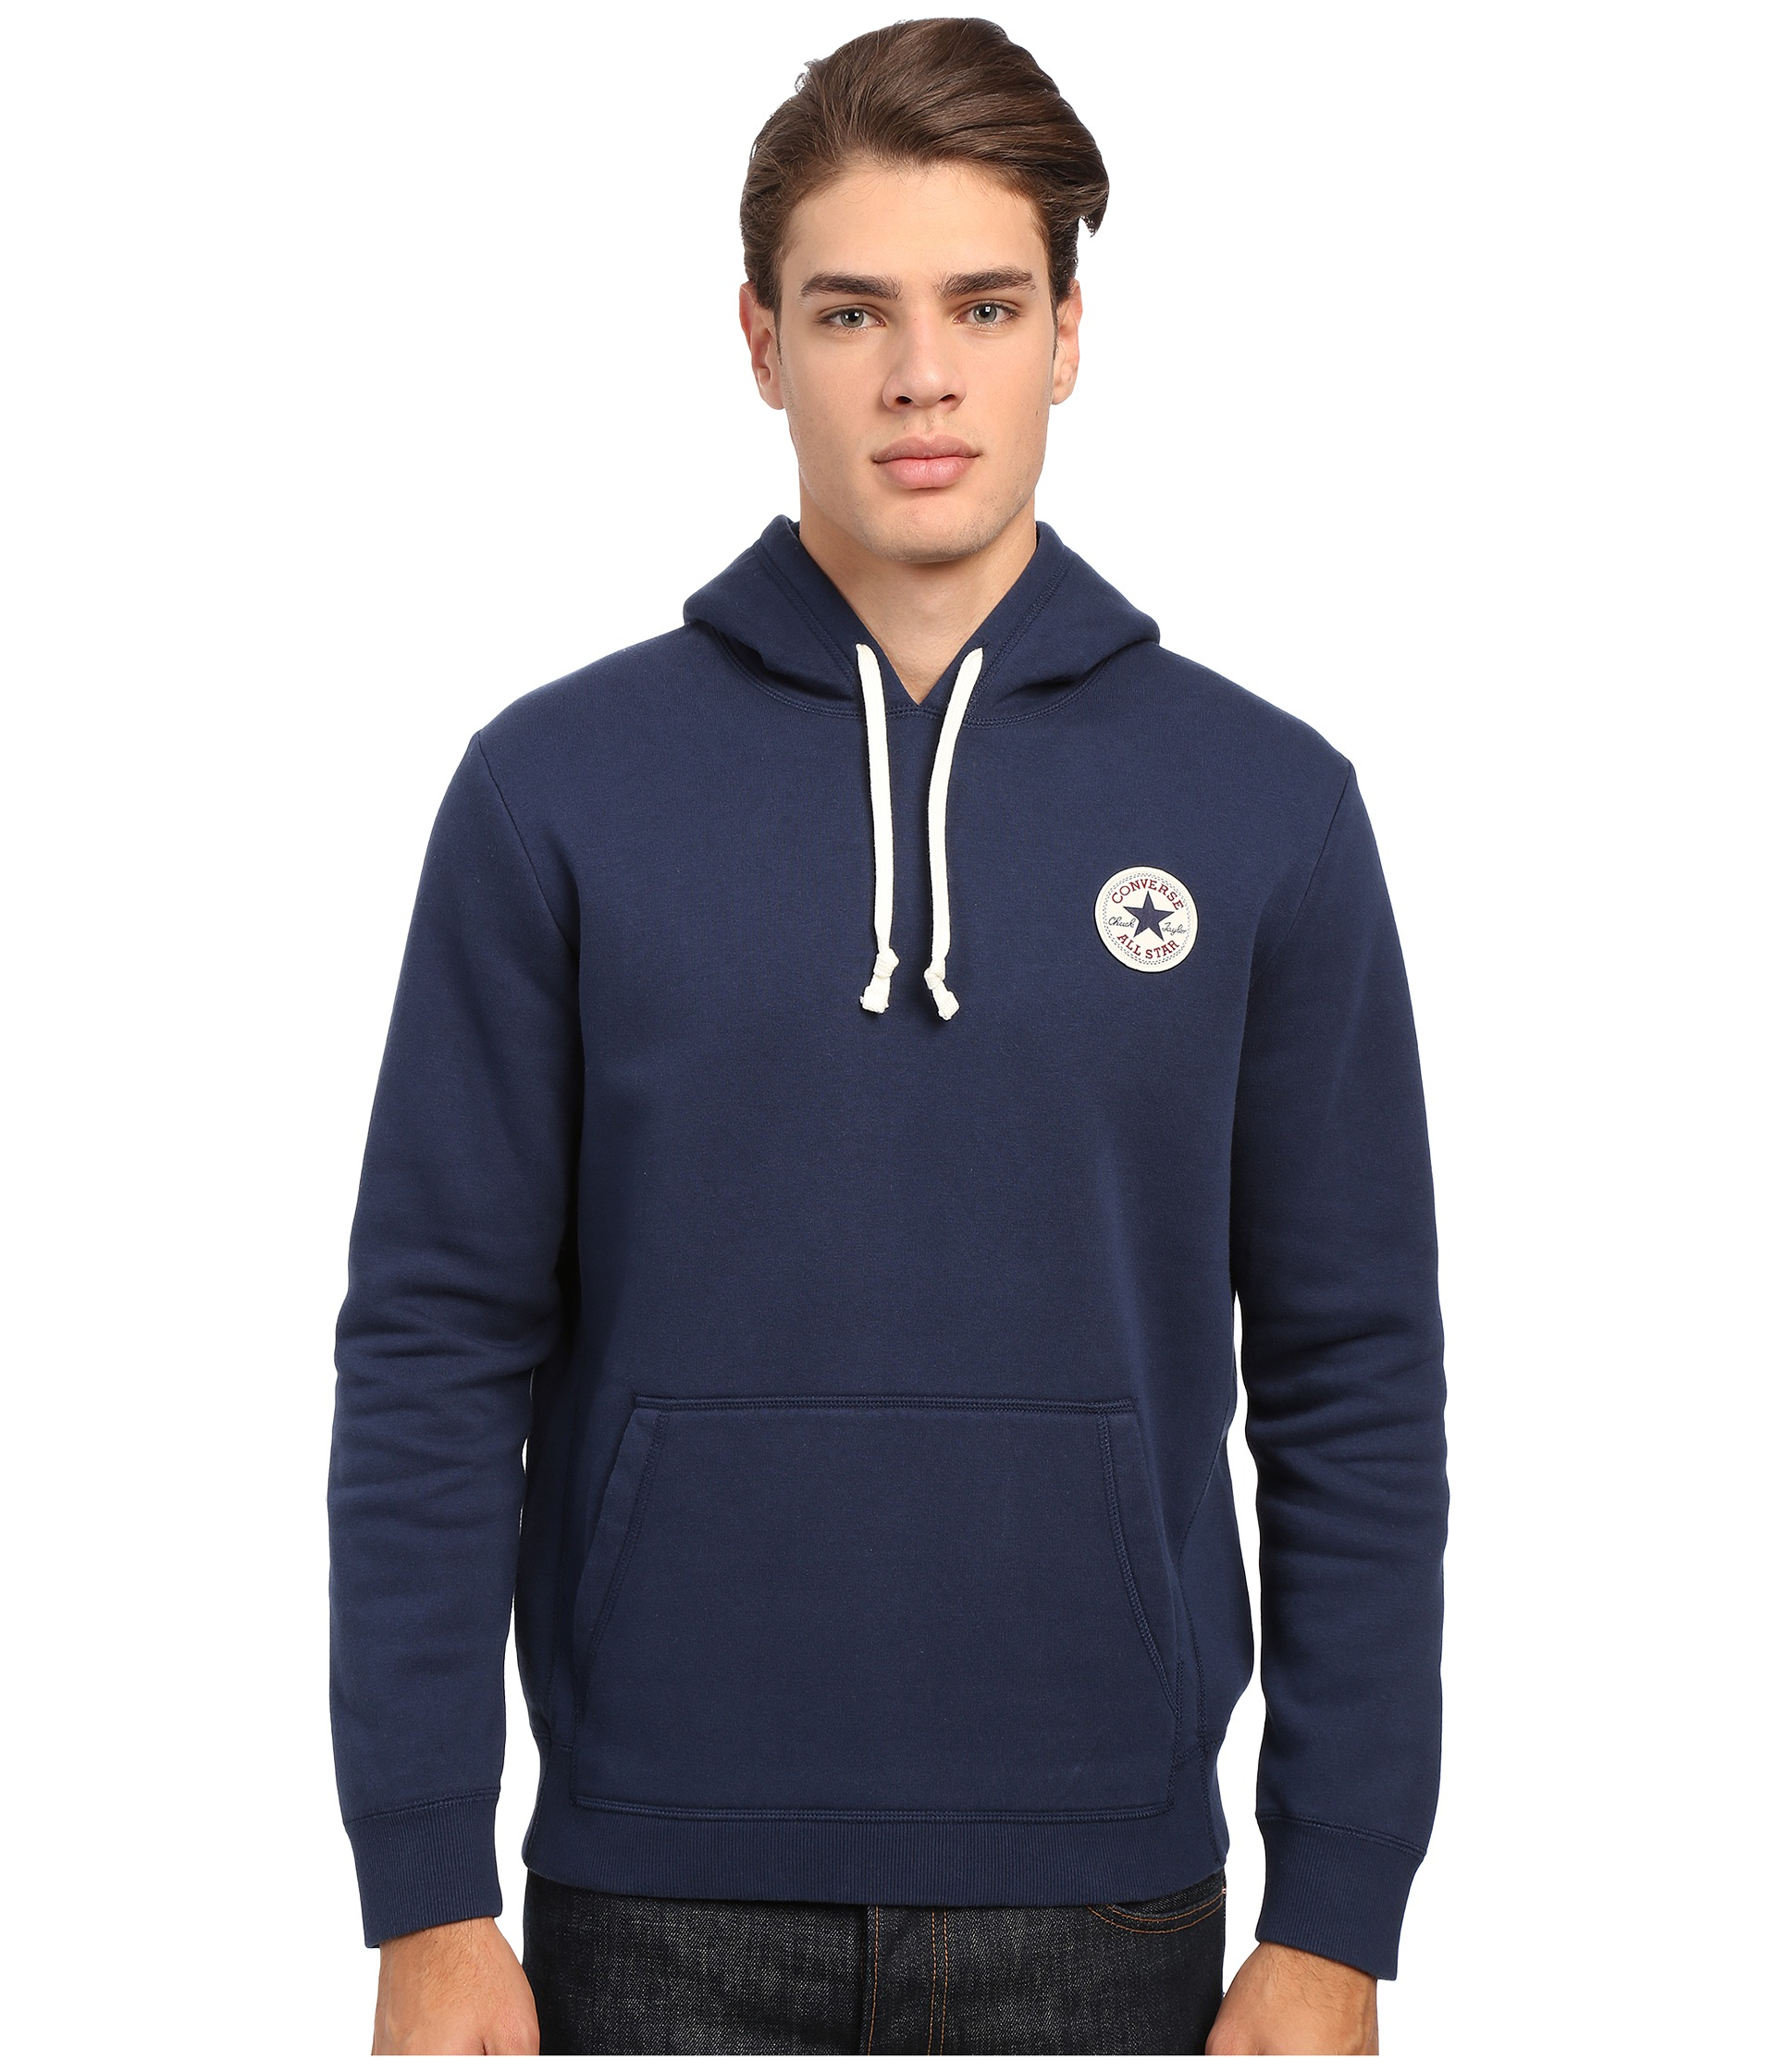 Converse hoodie – made of pure cotton!